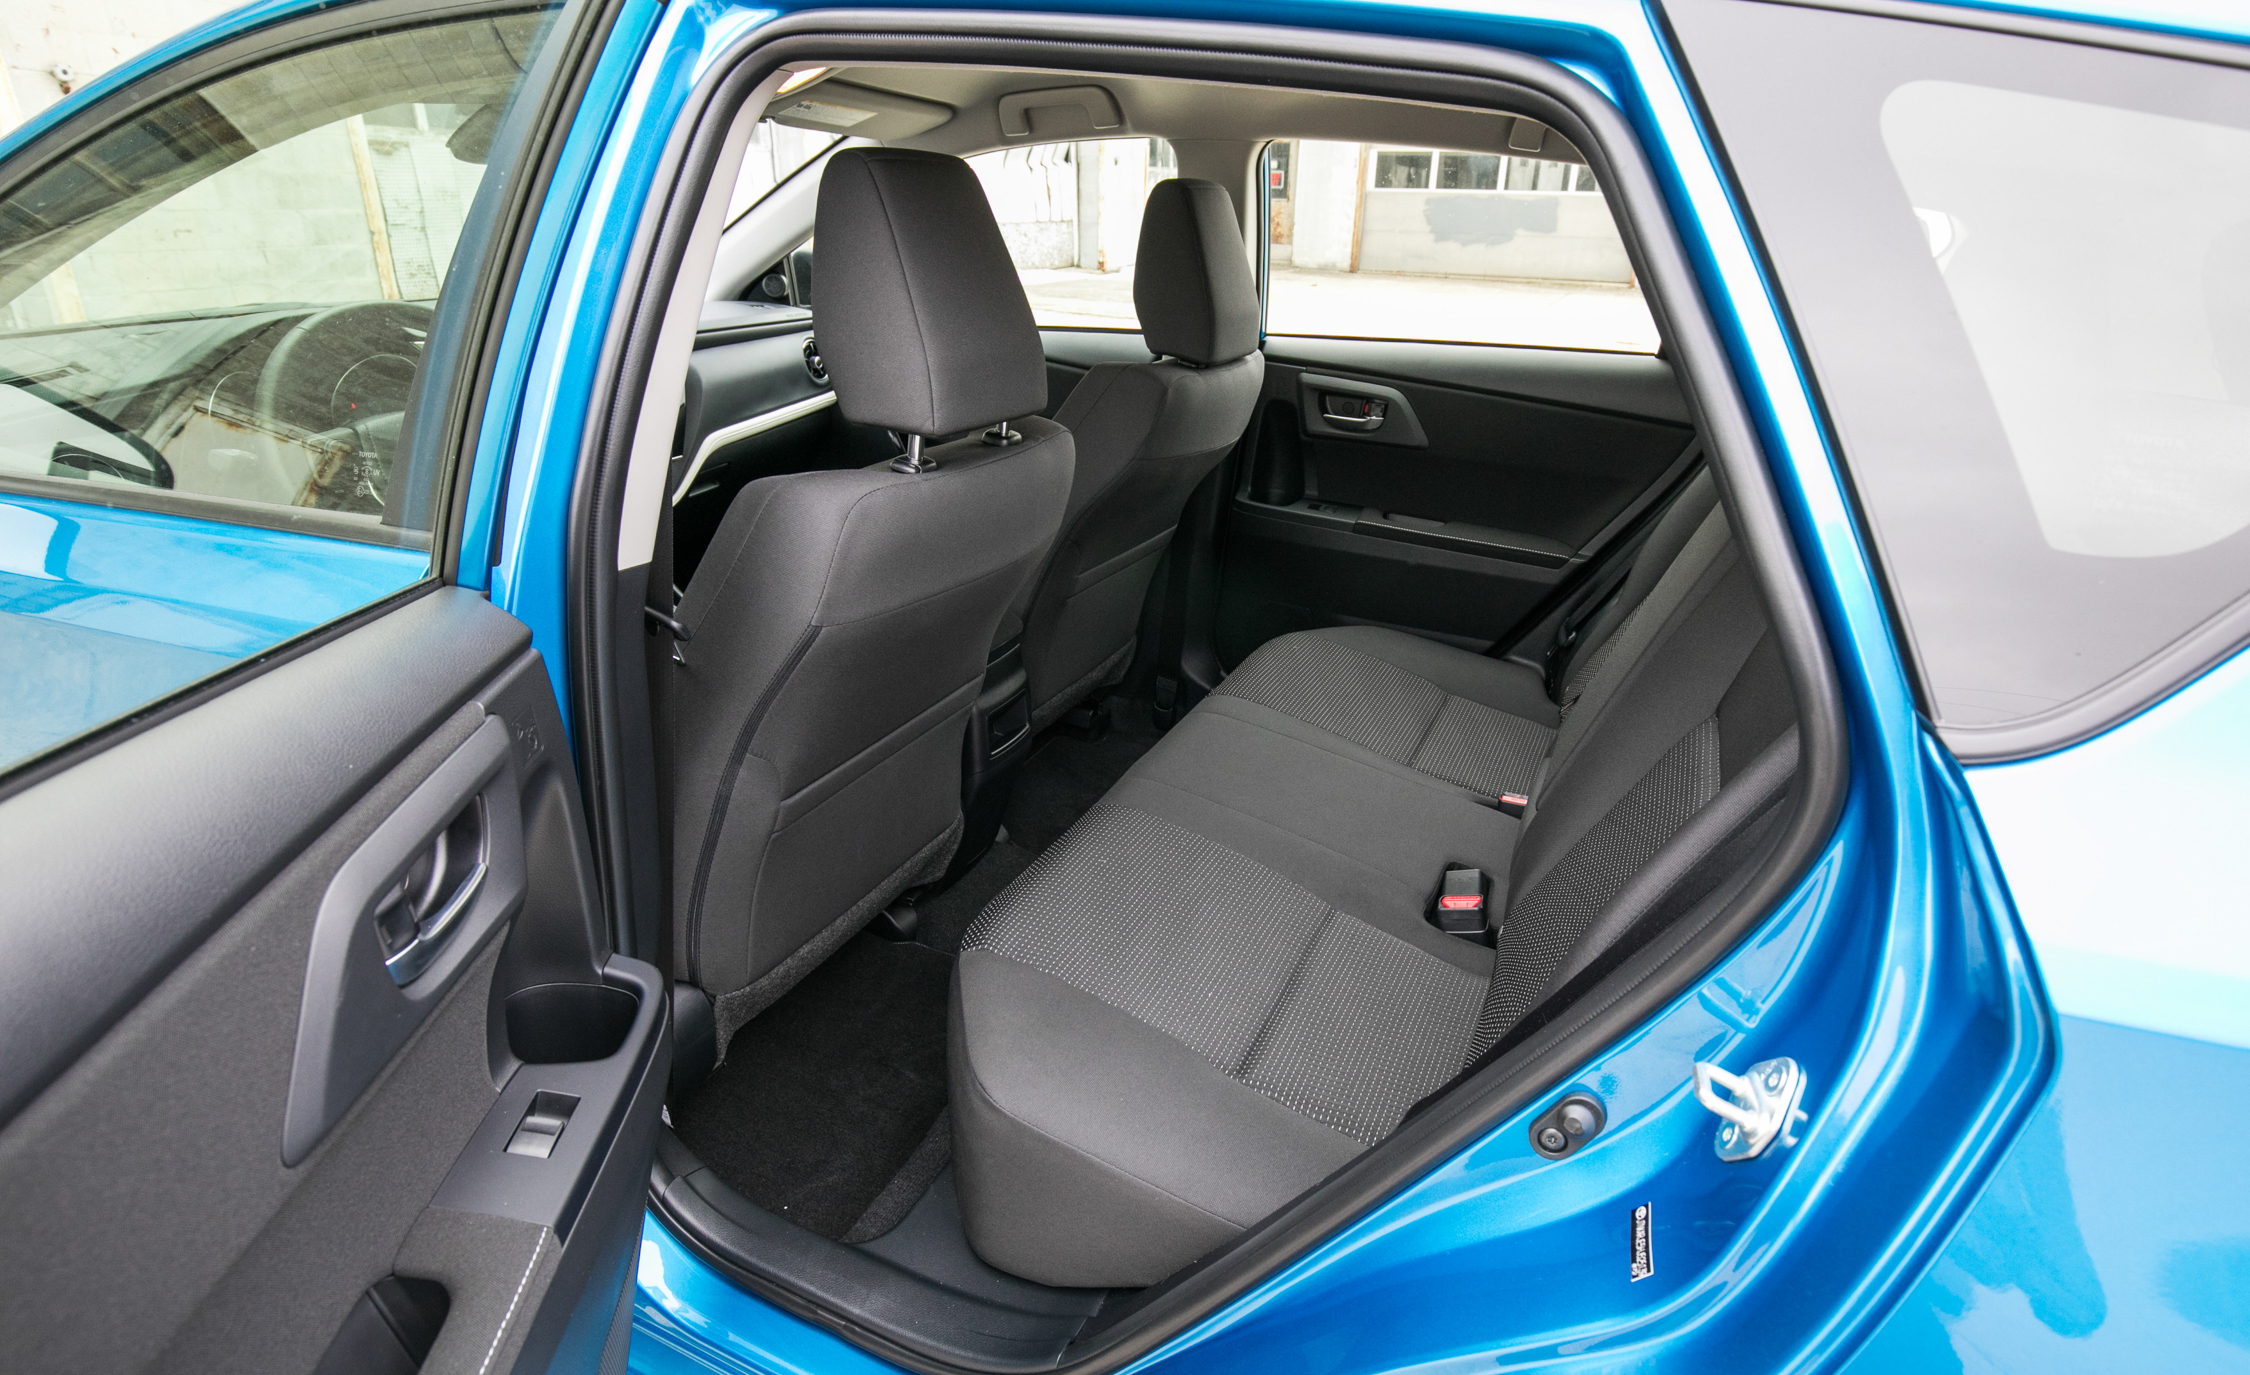 2017 Toyota Corolla IM Hatchback Interior Seats Rear Space (Photo 32 of 52)